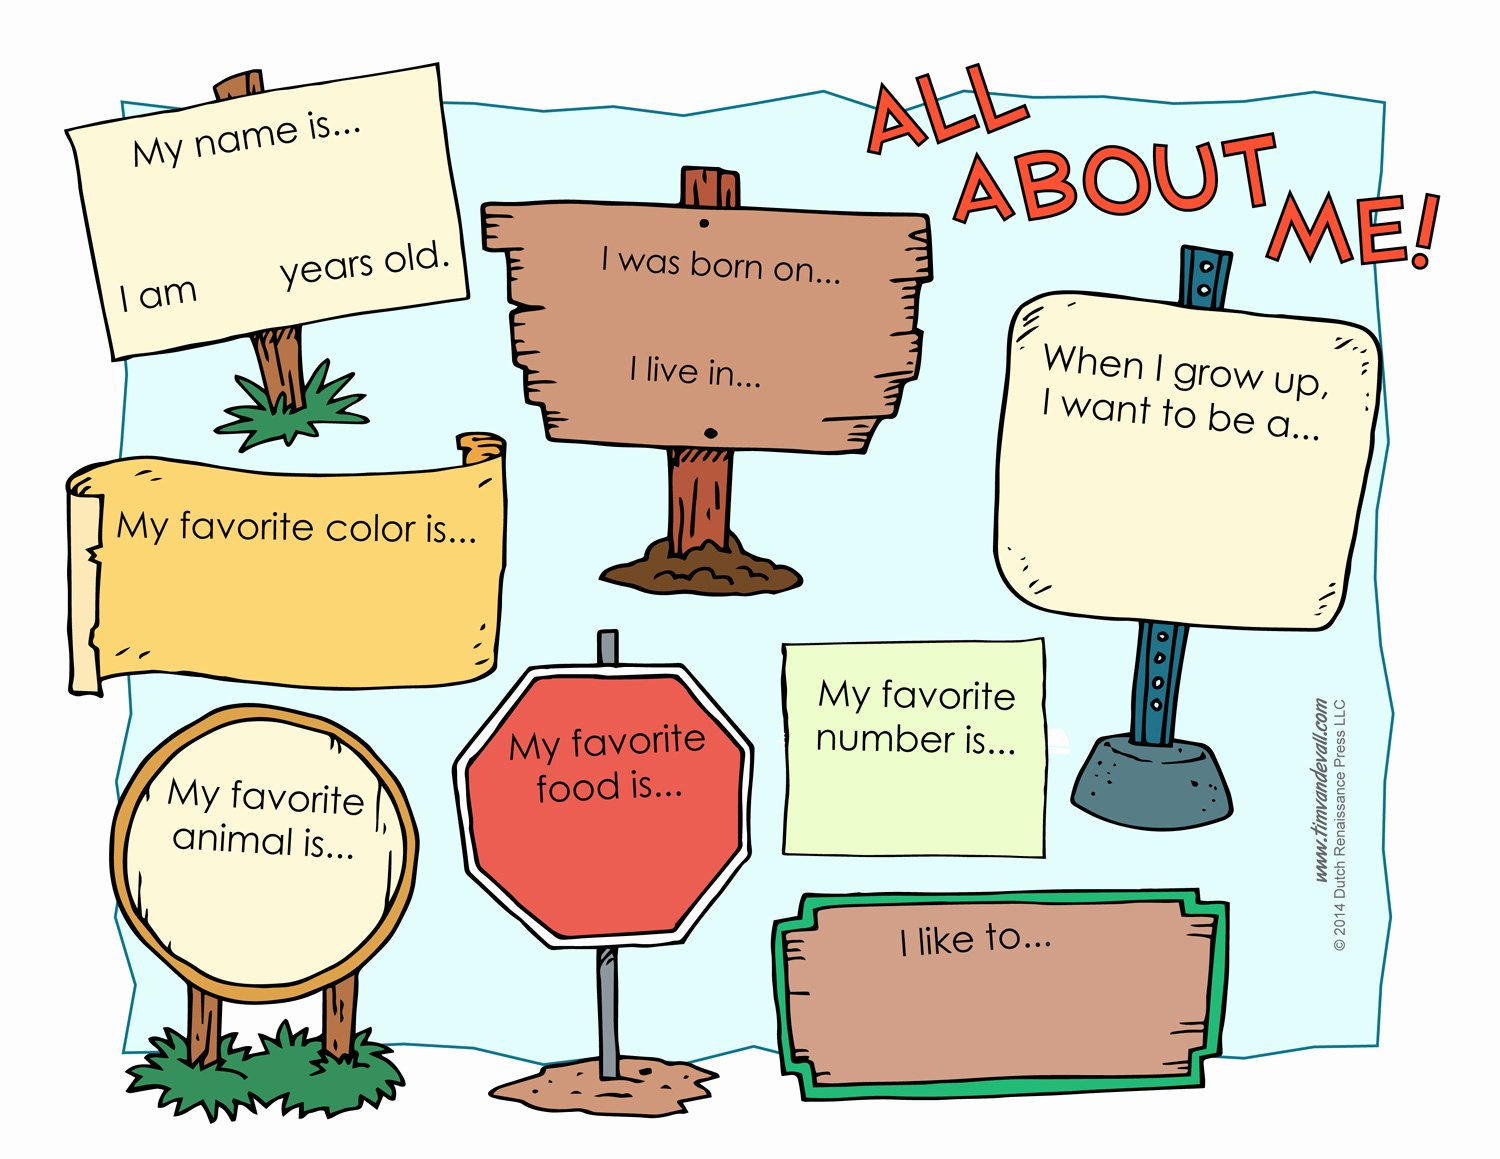 50 All About Me Printable Worksheet